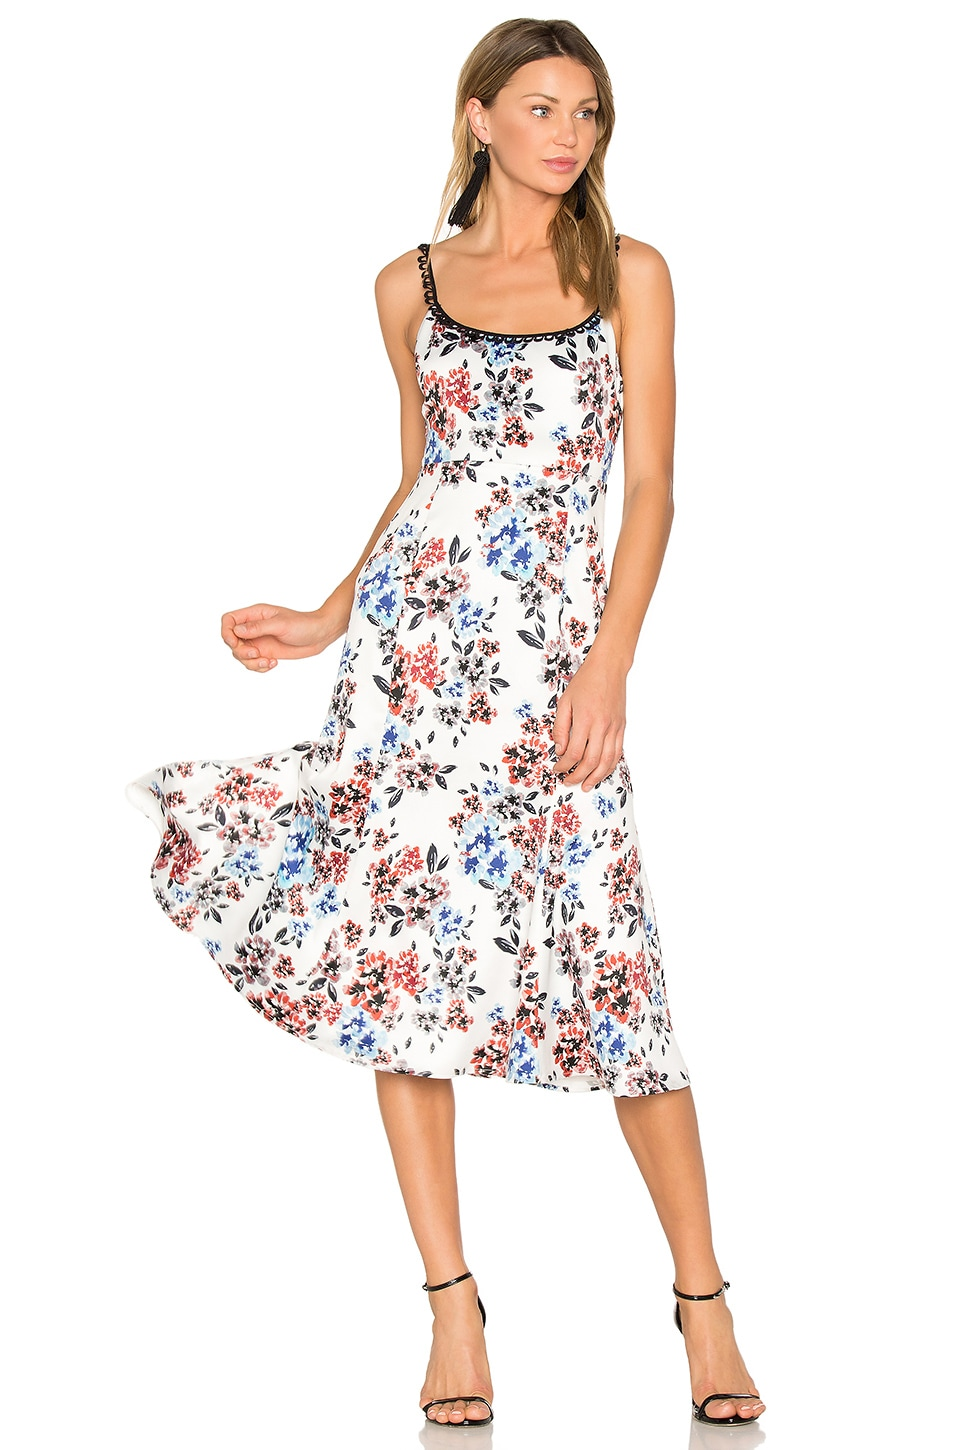 NBD Secora Midi Dress in Spring Bloom Floral